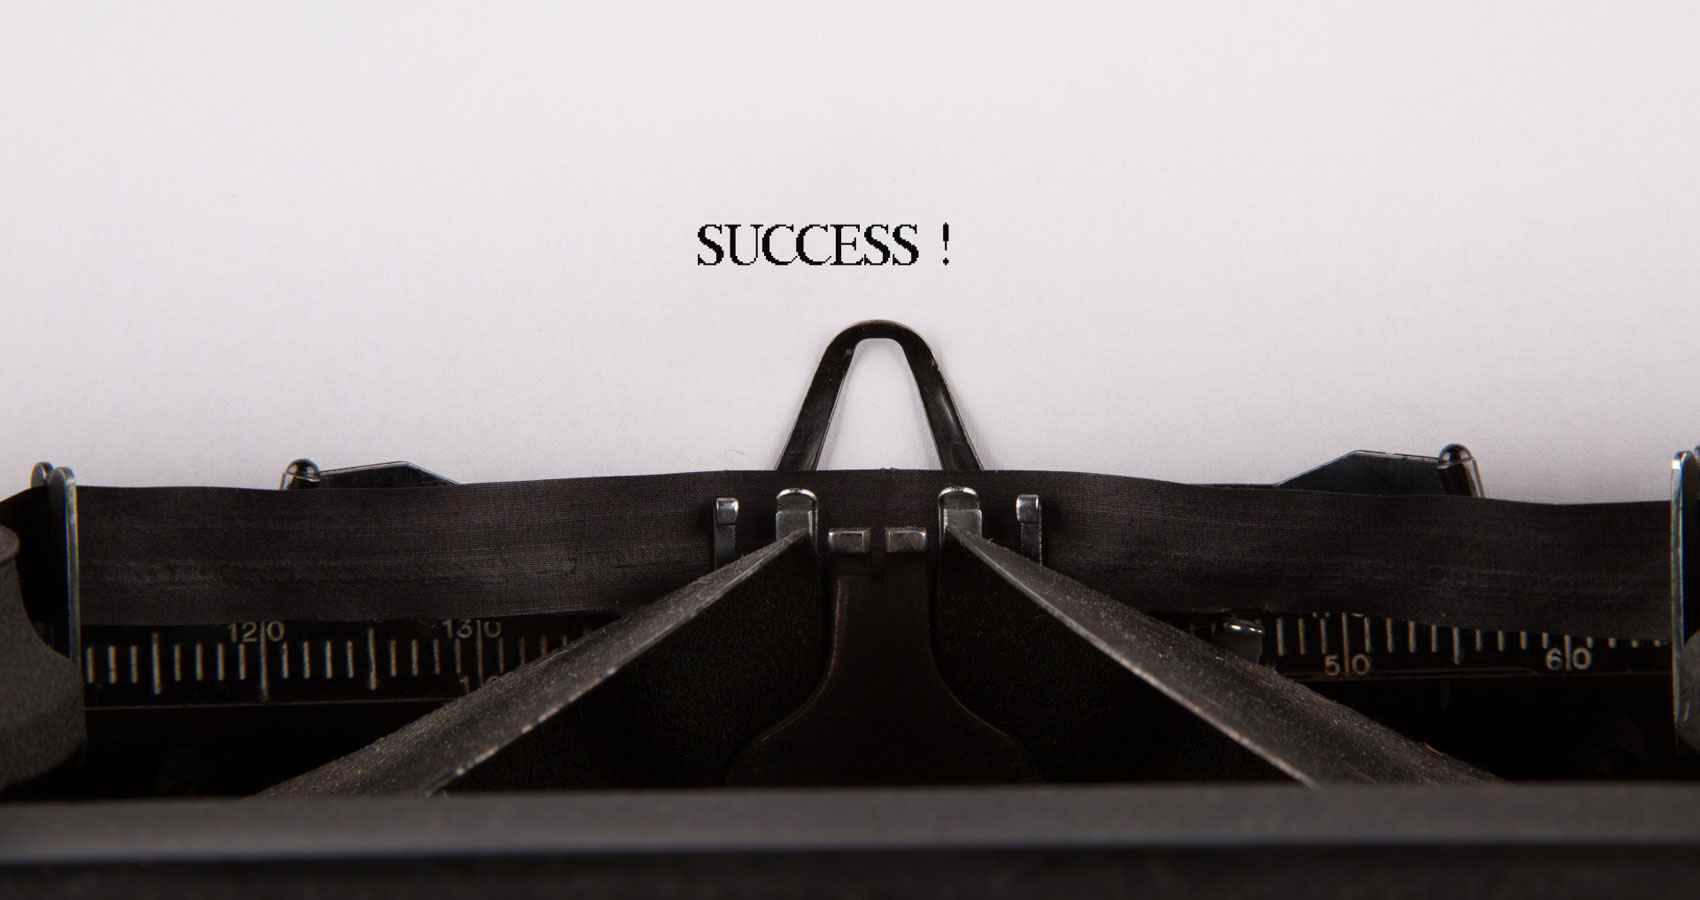 Success written by Dirk Sandarupa at Spillwords.com